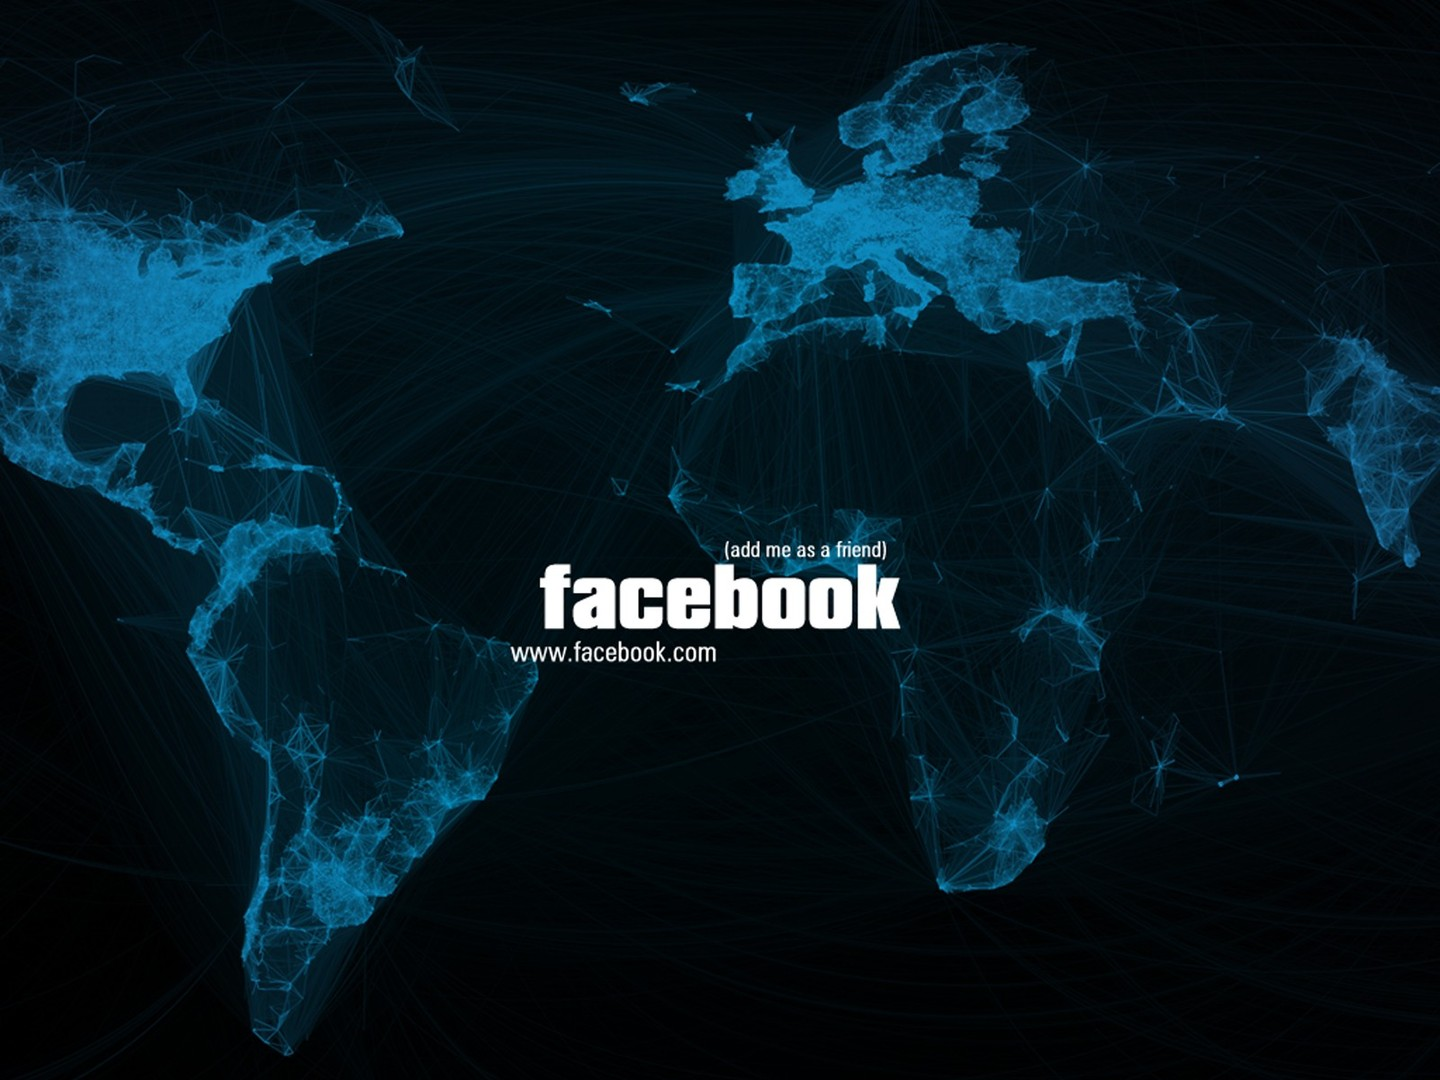 HD Wallpapers Pics: Facebook Background Wallpapers